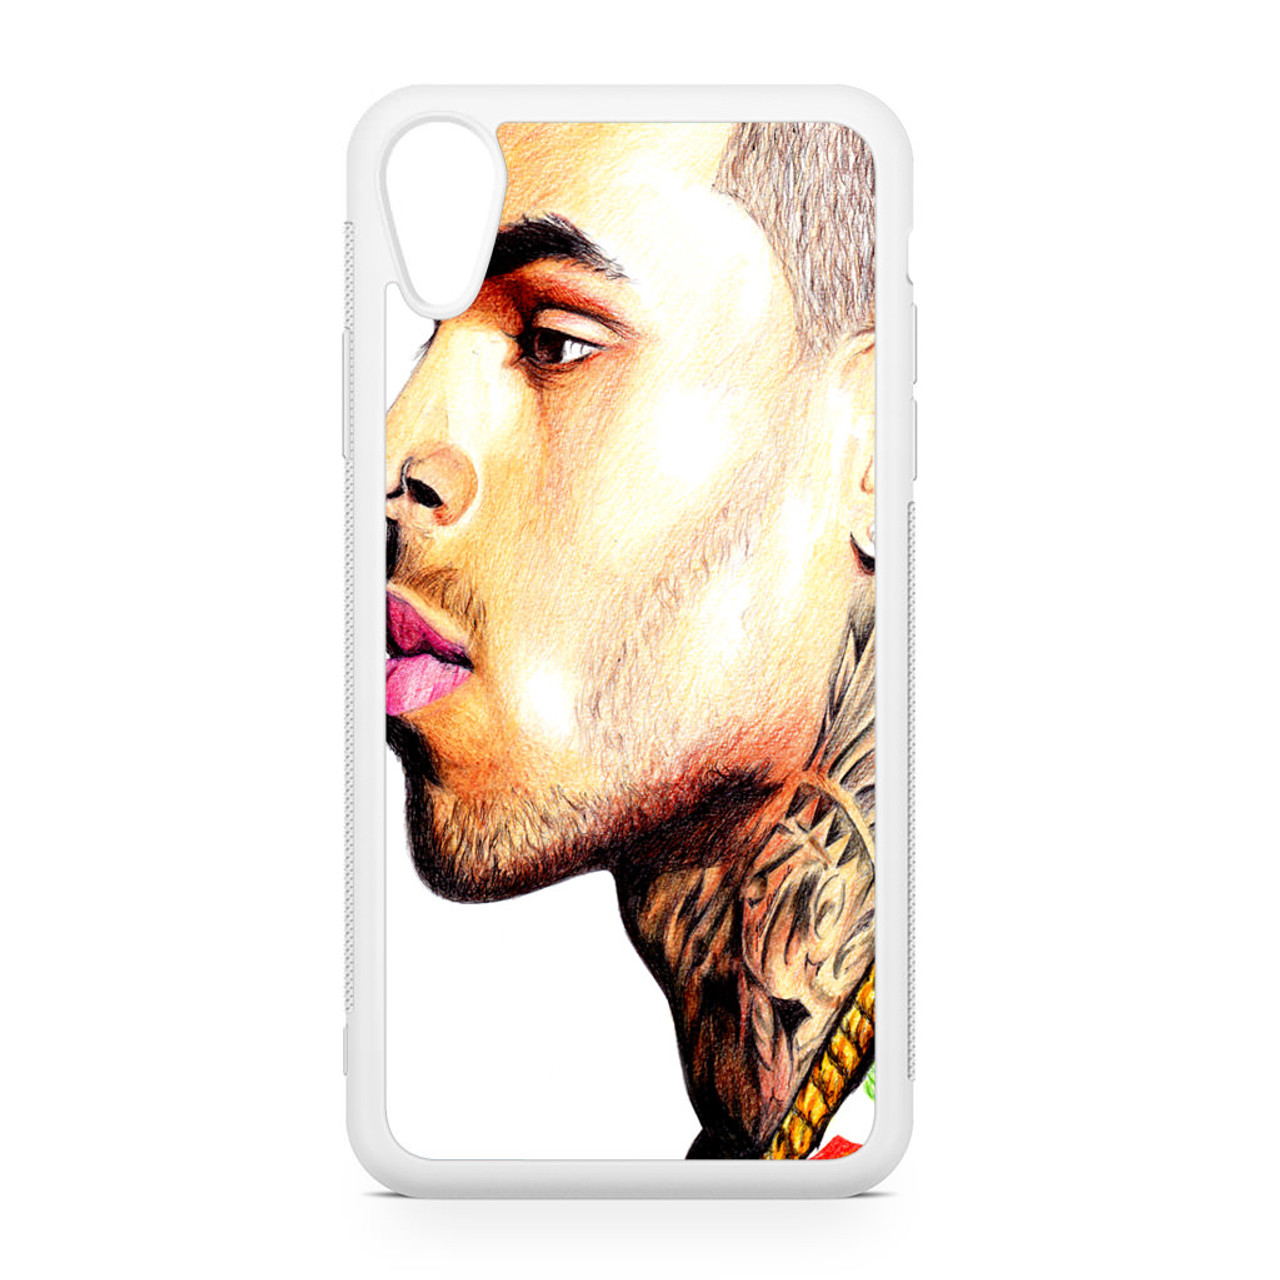 Chris Brown 2 iphone case